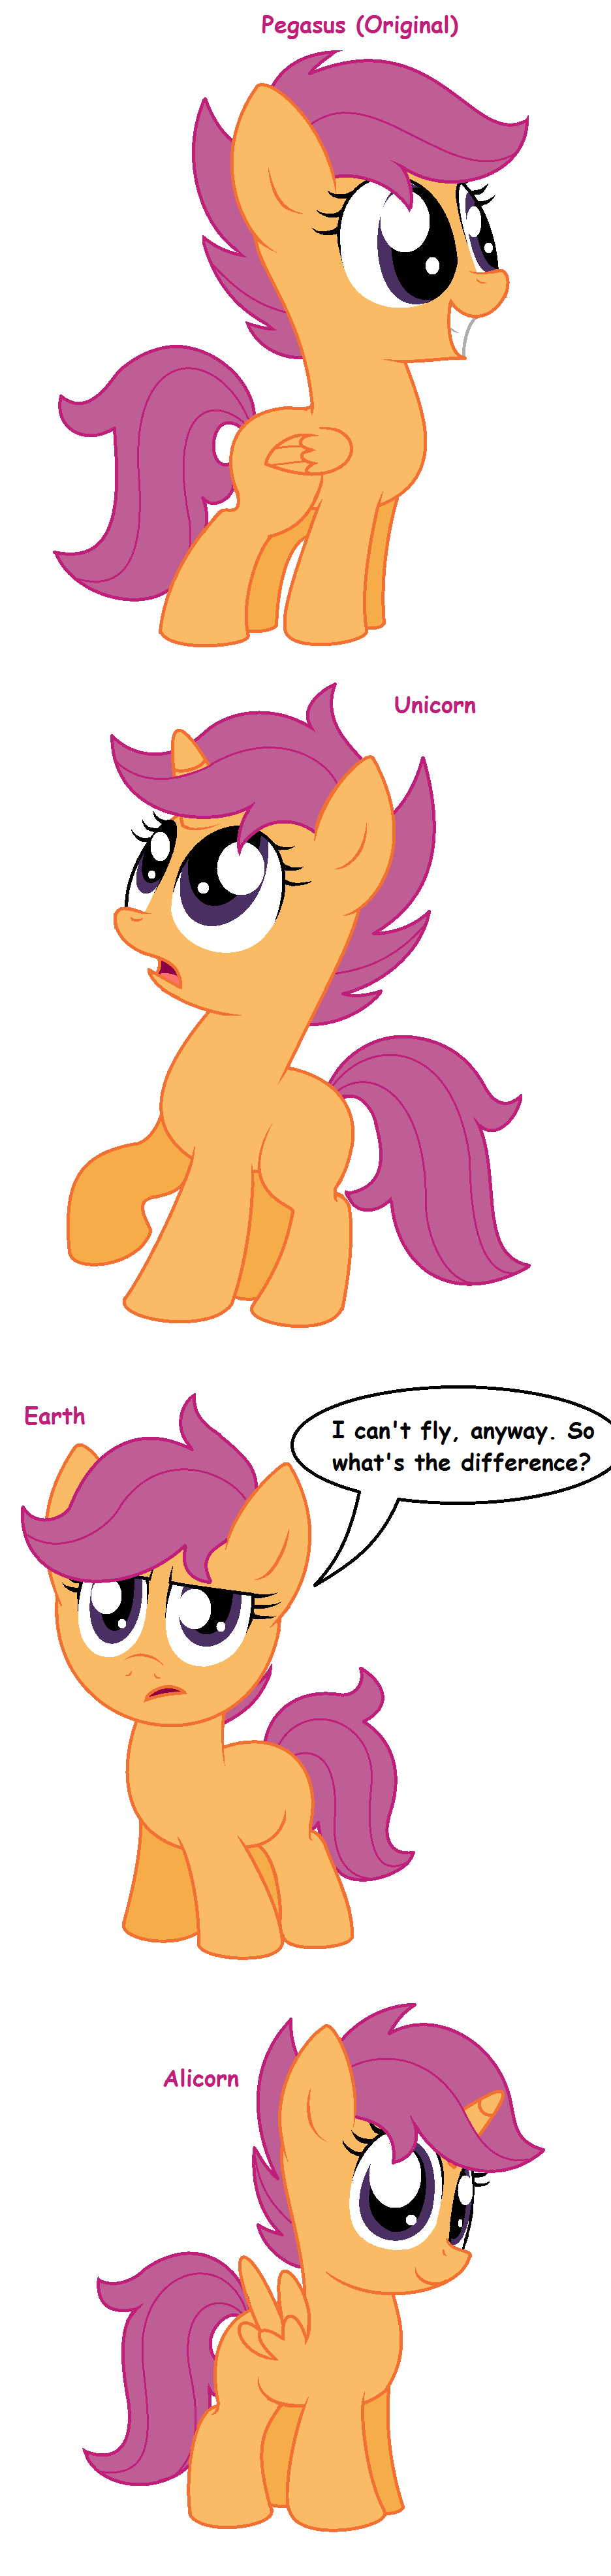 Image 640588 My Little Pony Friendship Is Magic Know Your Meme Unfortunately, there were only 27 instances of scootaloo across three seasons. image 640588 my little pony